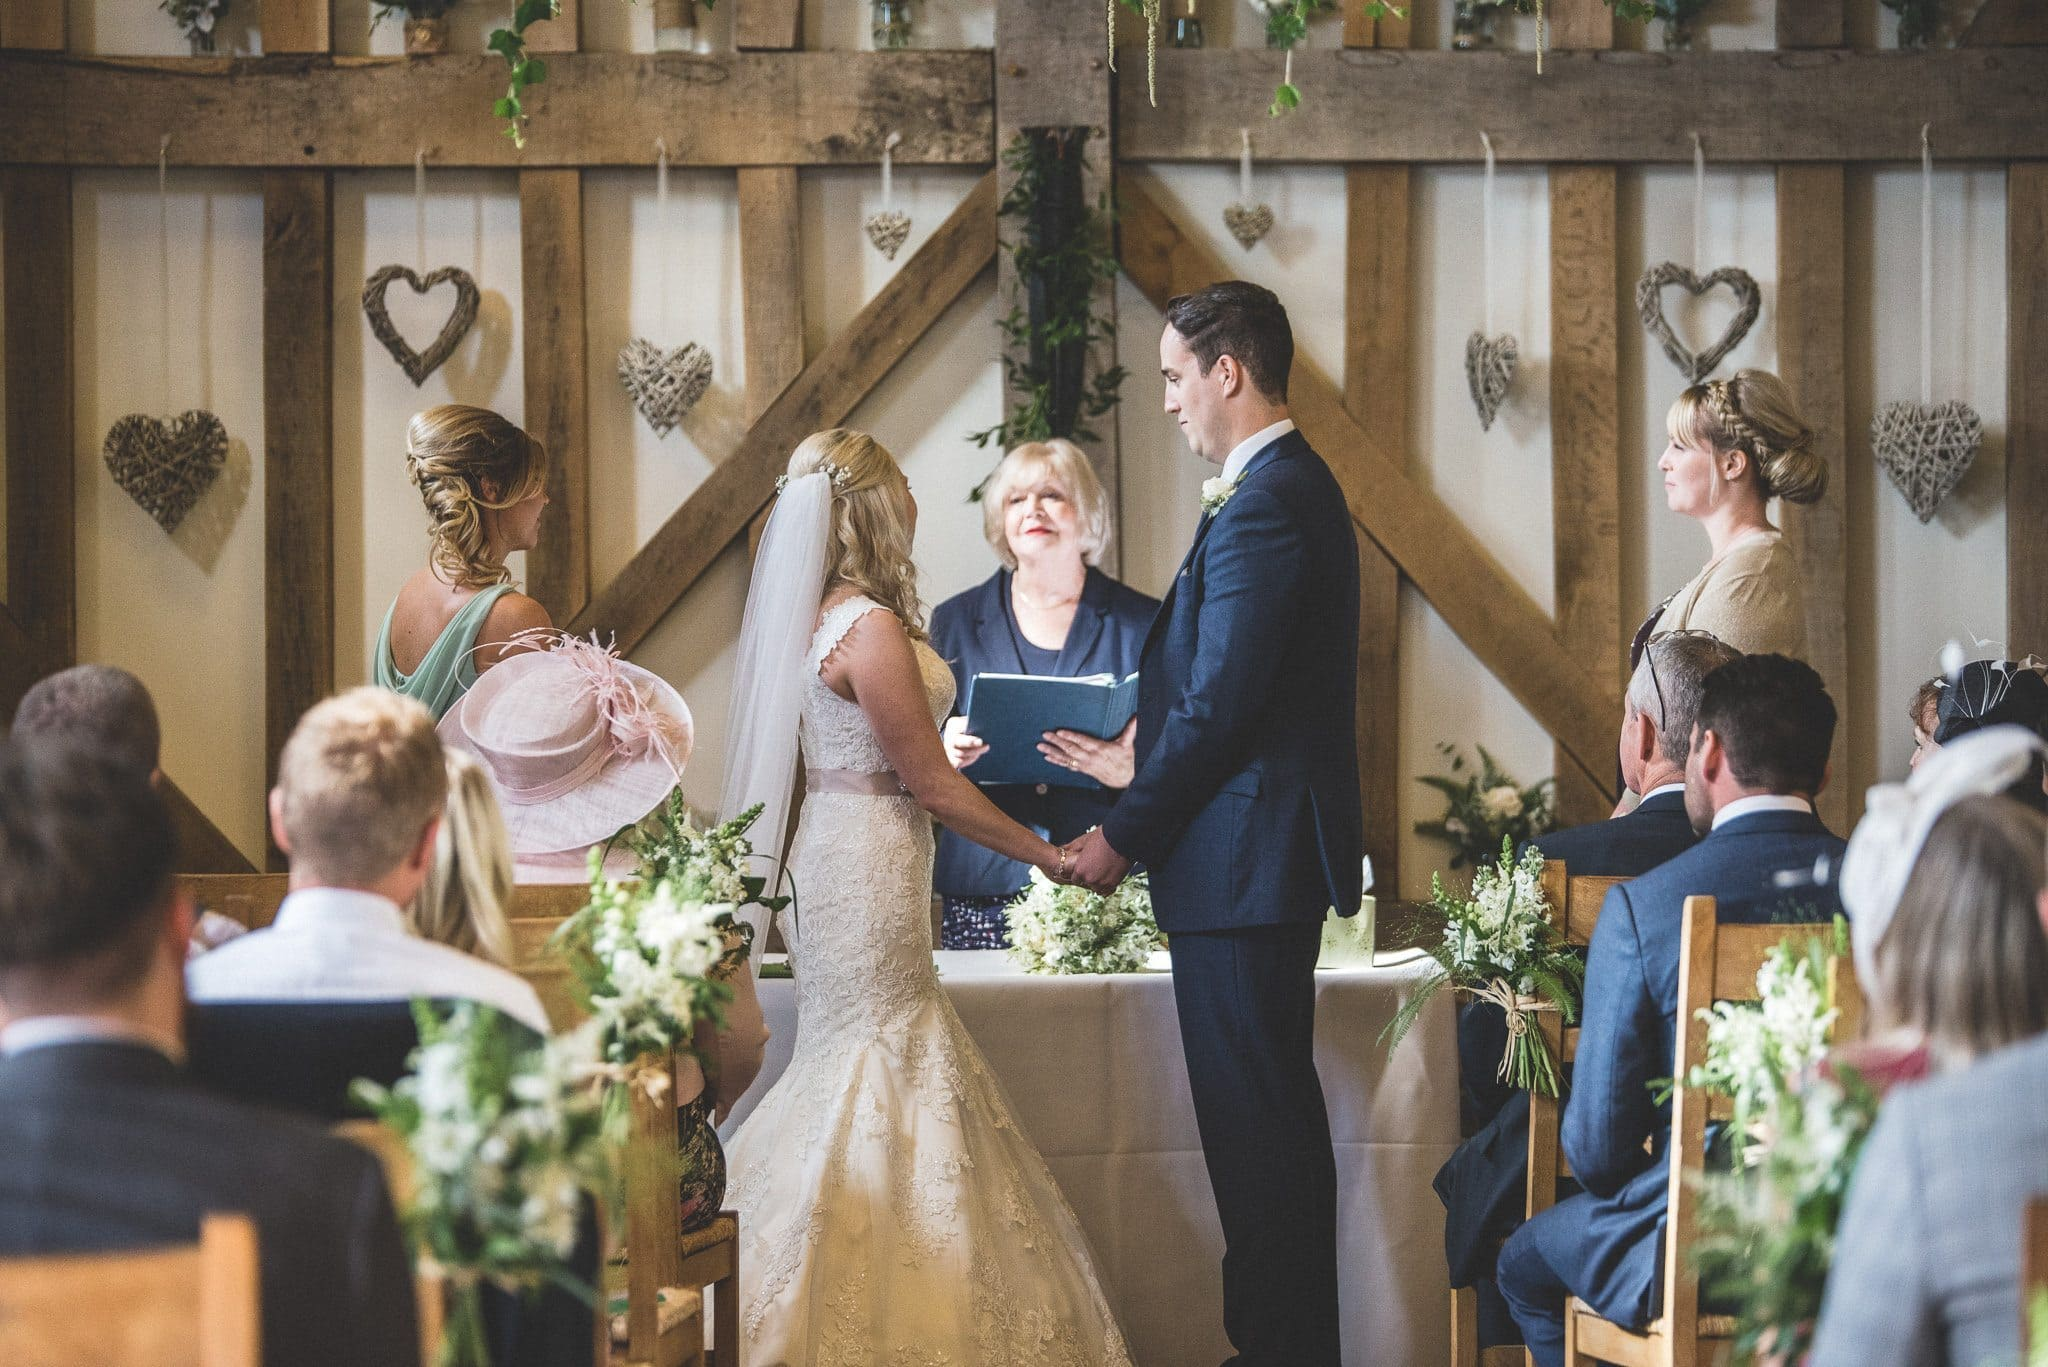 Emma and Philip hold hands at the end of the aisle as the registrar conducts their marriage ceremony